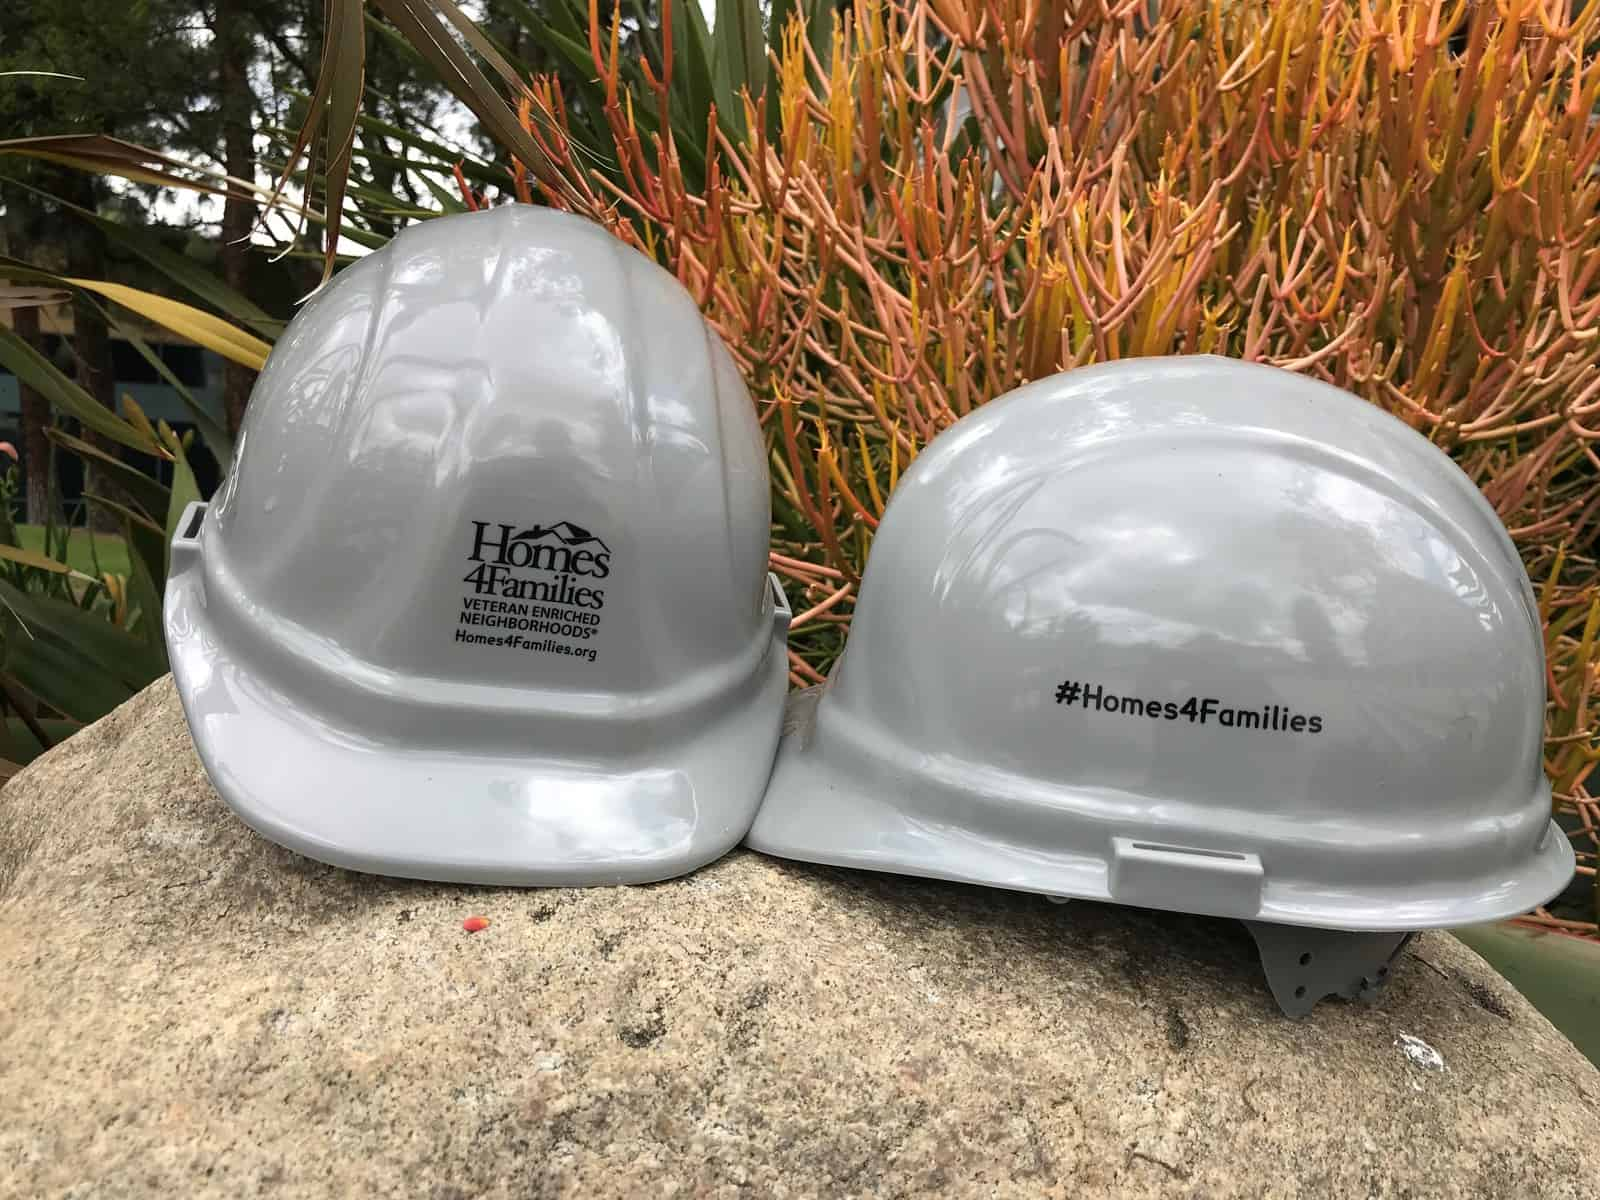 Where Your Hard Hats 4 Heroes Contributions Go